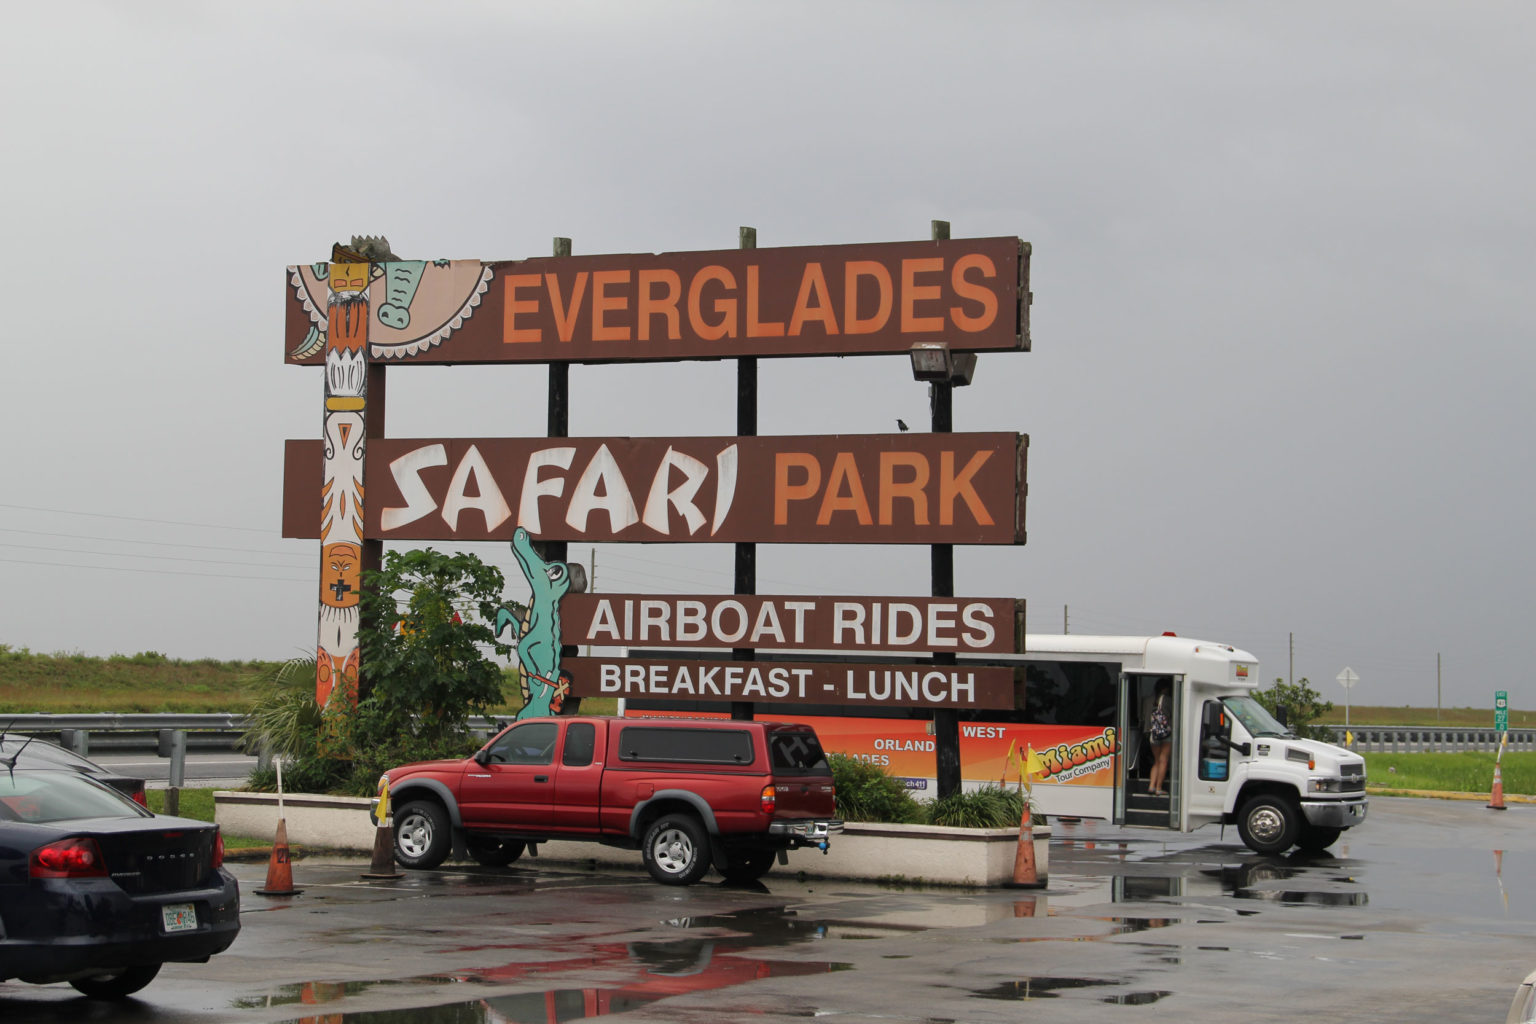 Everglades-Safari-Park